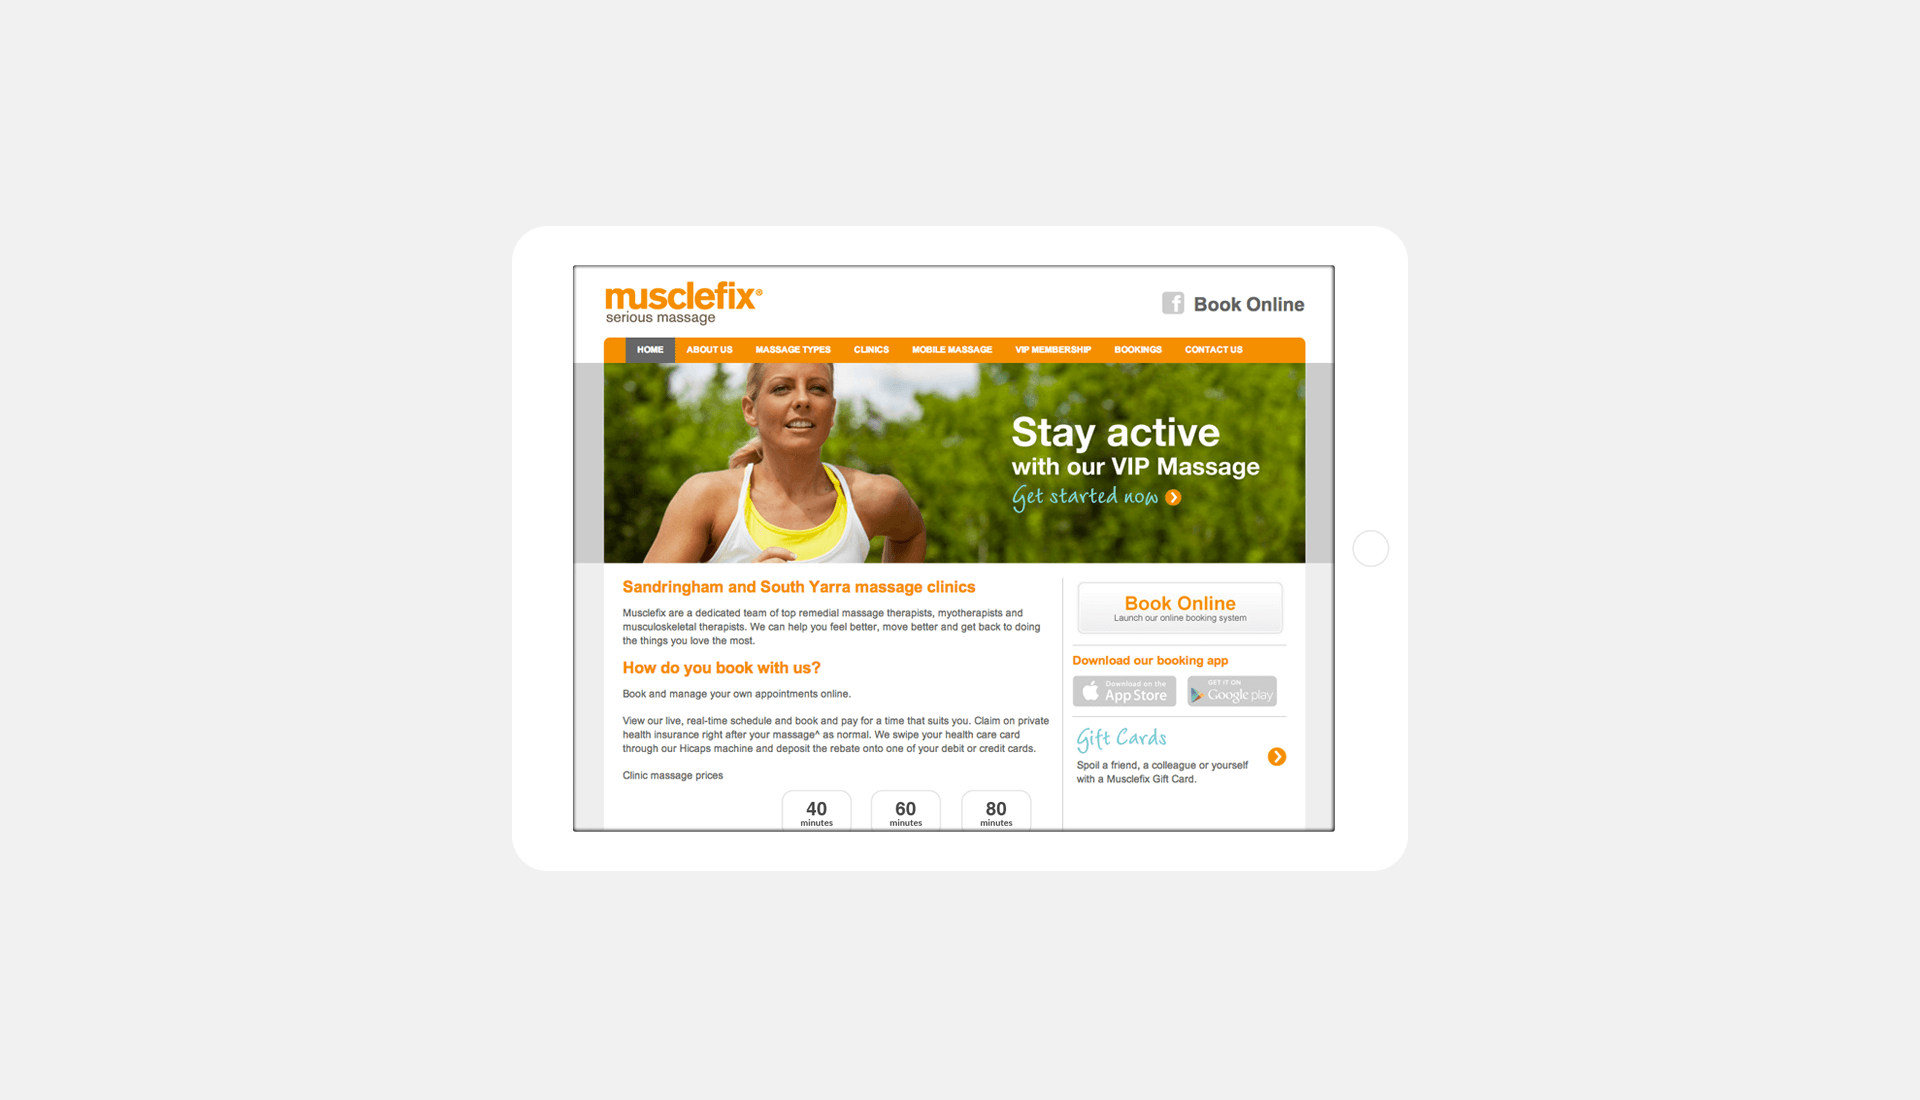 MUSCLEFIX WEBSITE